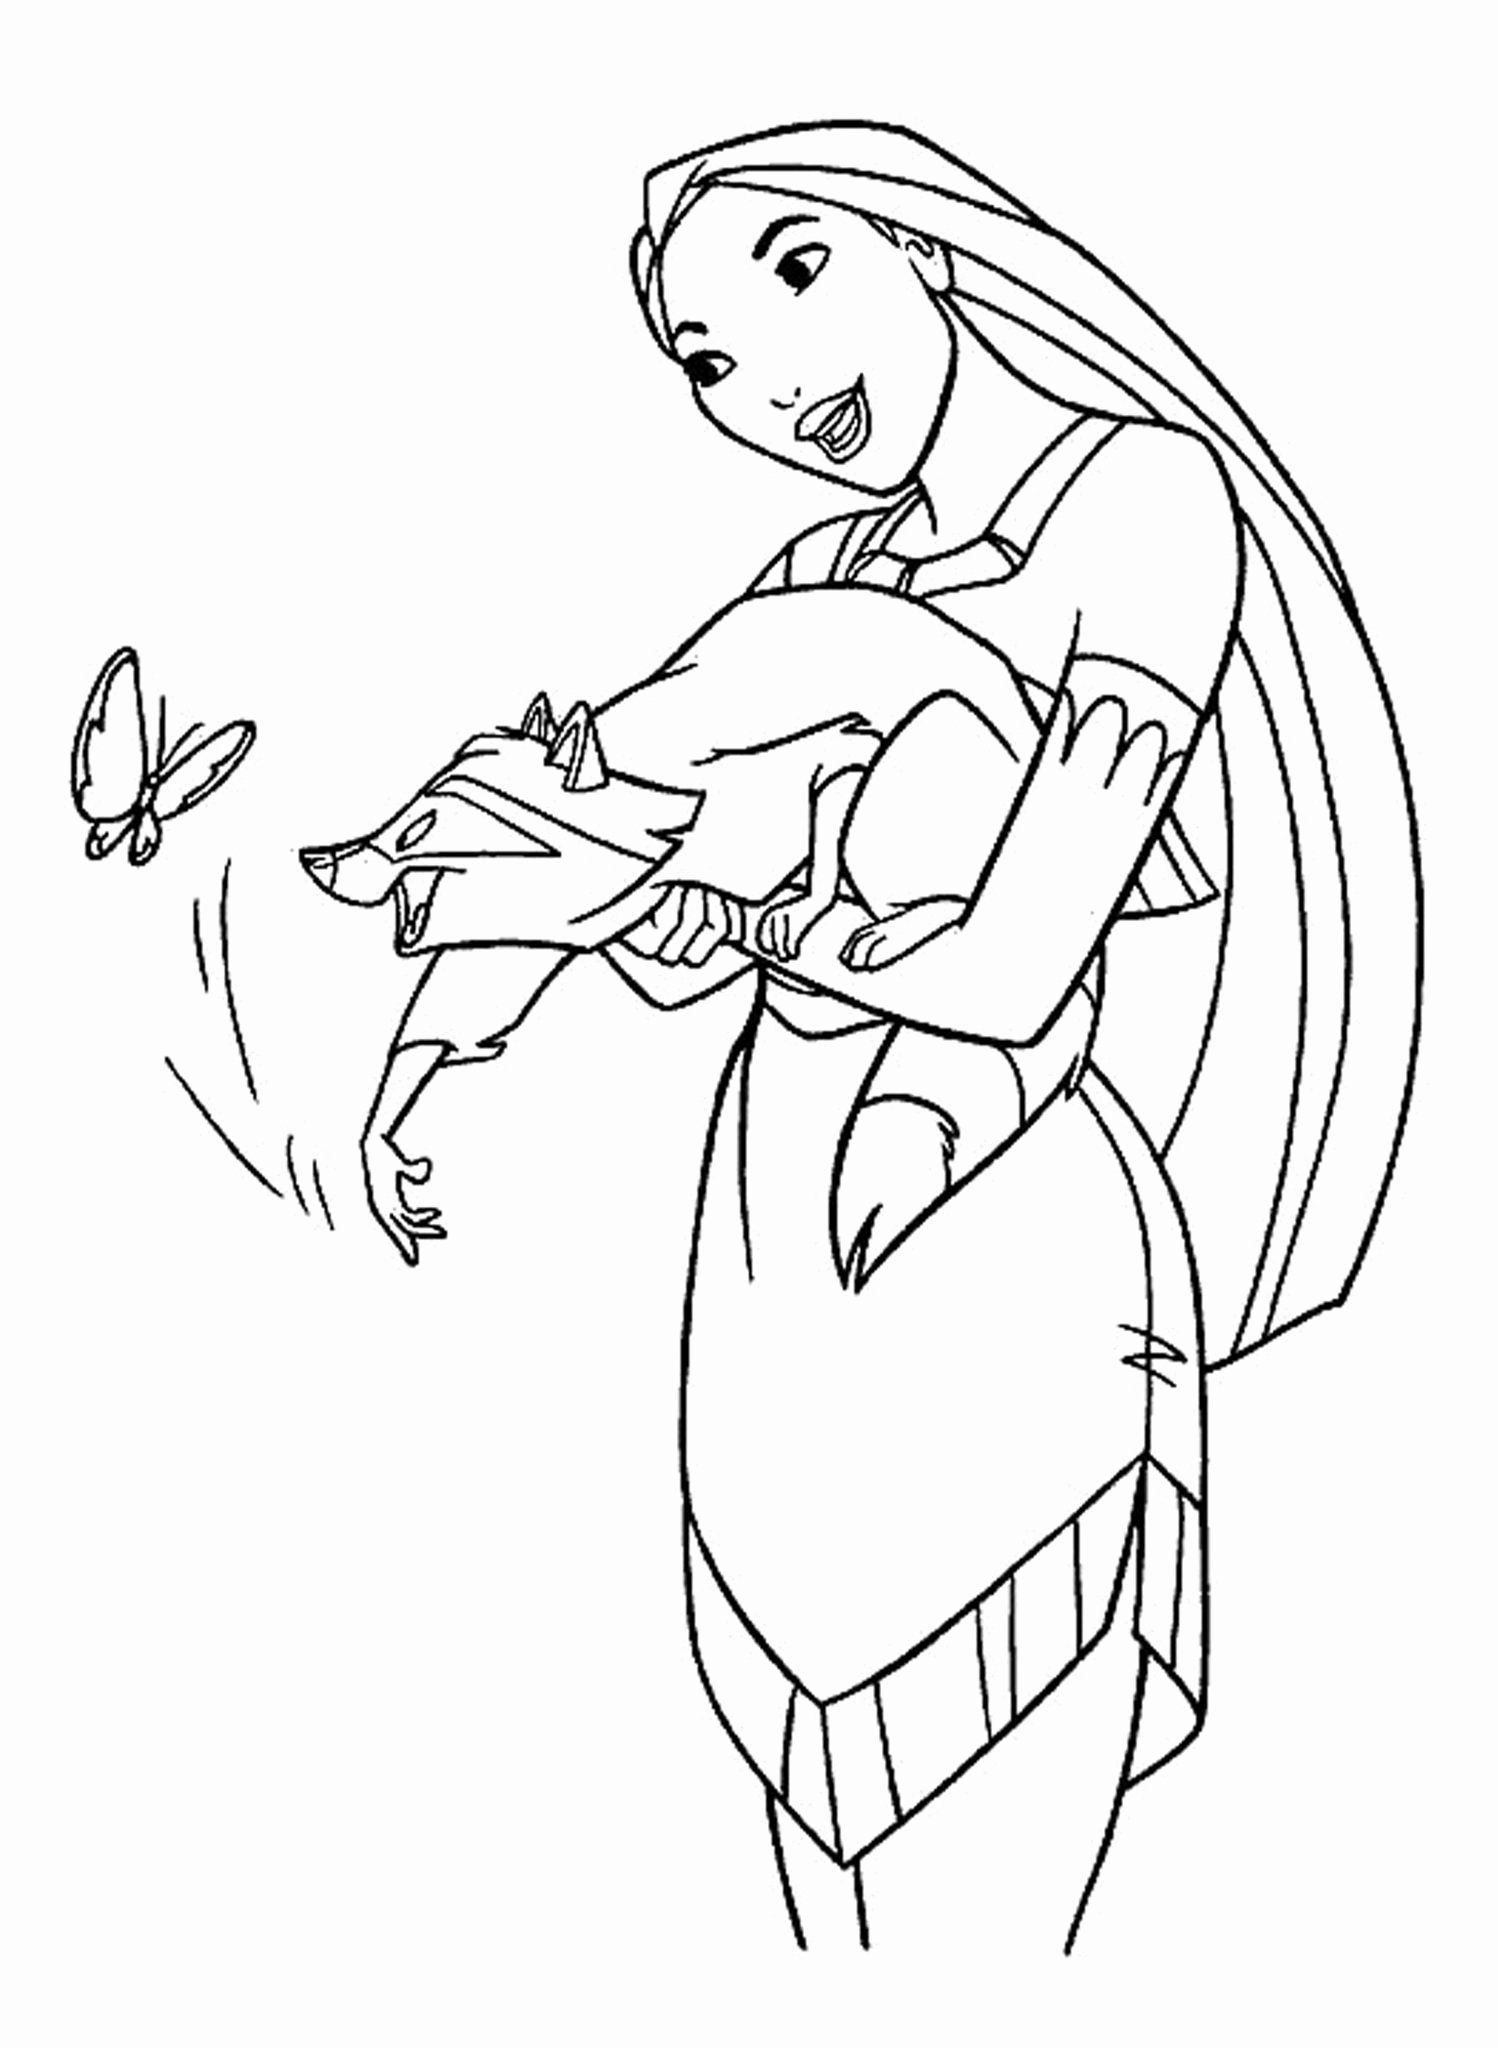 Simple Disney Coloring Pages Luxury Disney Coloring Pages for Your Children  in 2020 | Disney coloring pages, Disney princess coloring pages, Butterfly coloring  page